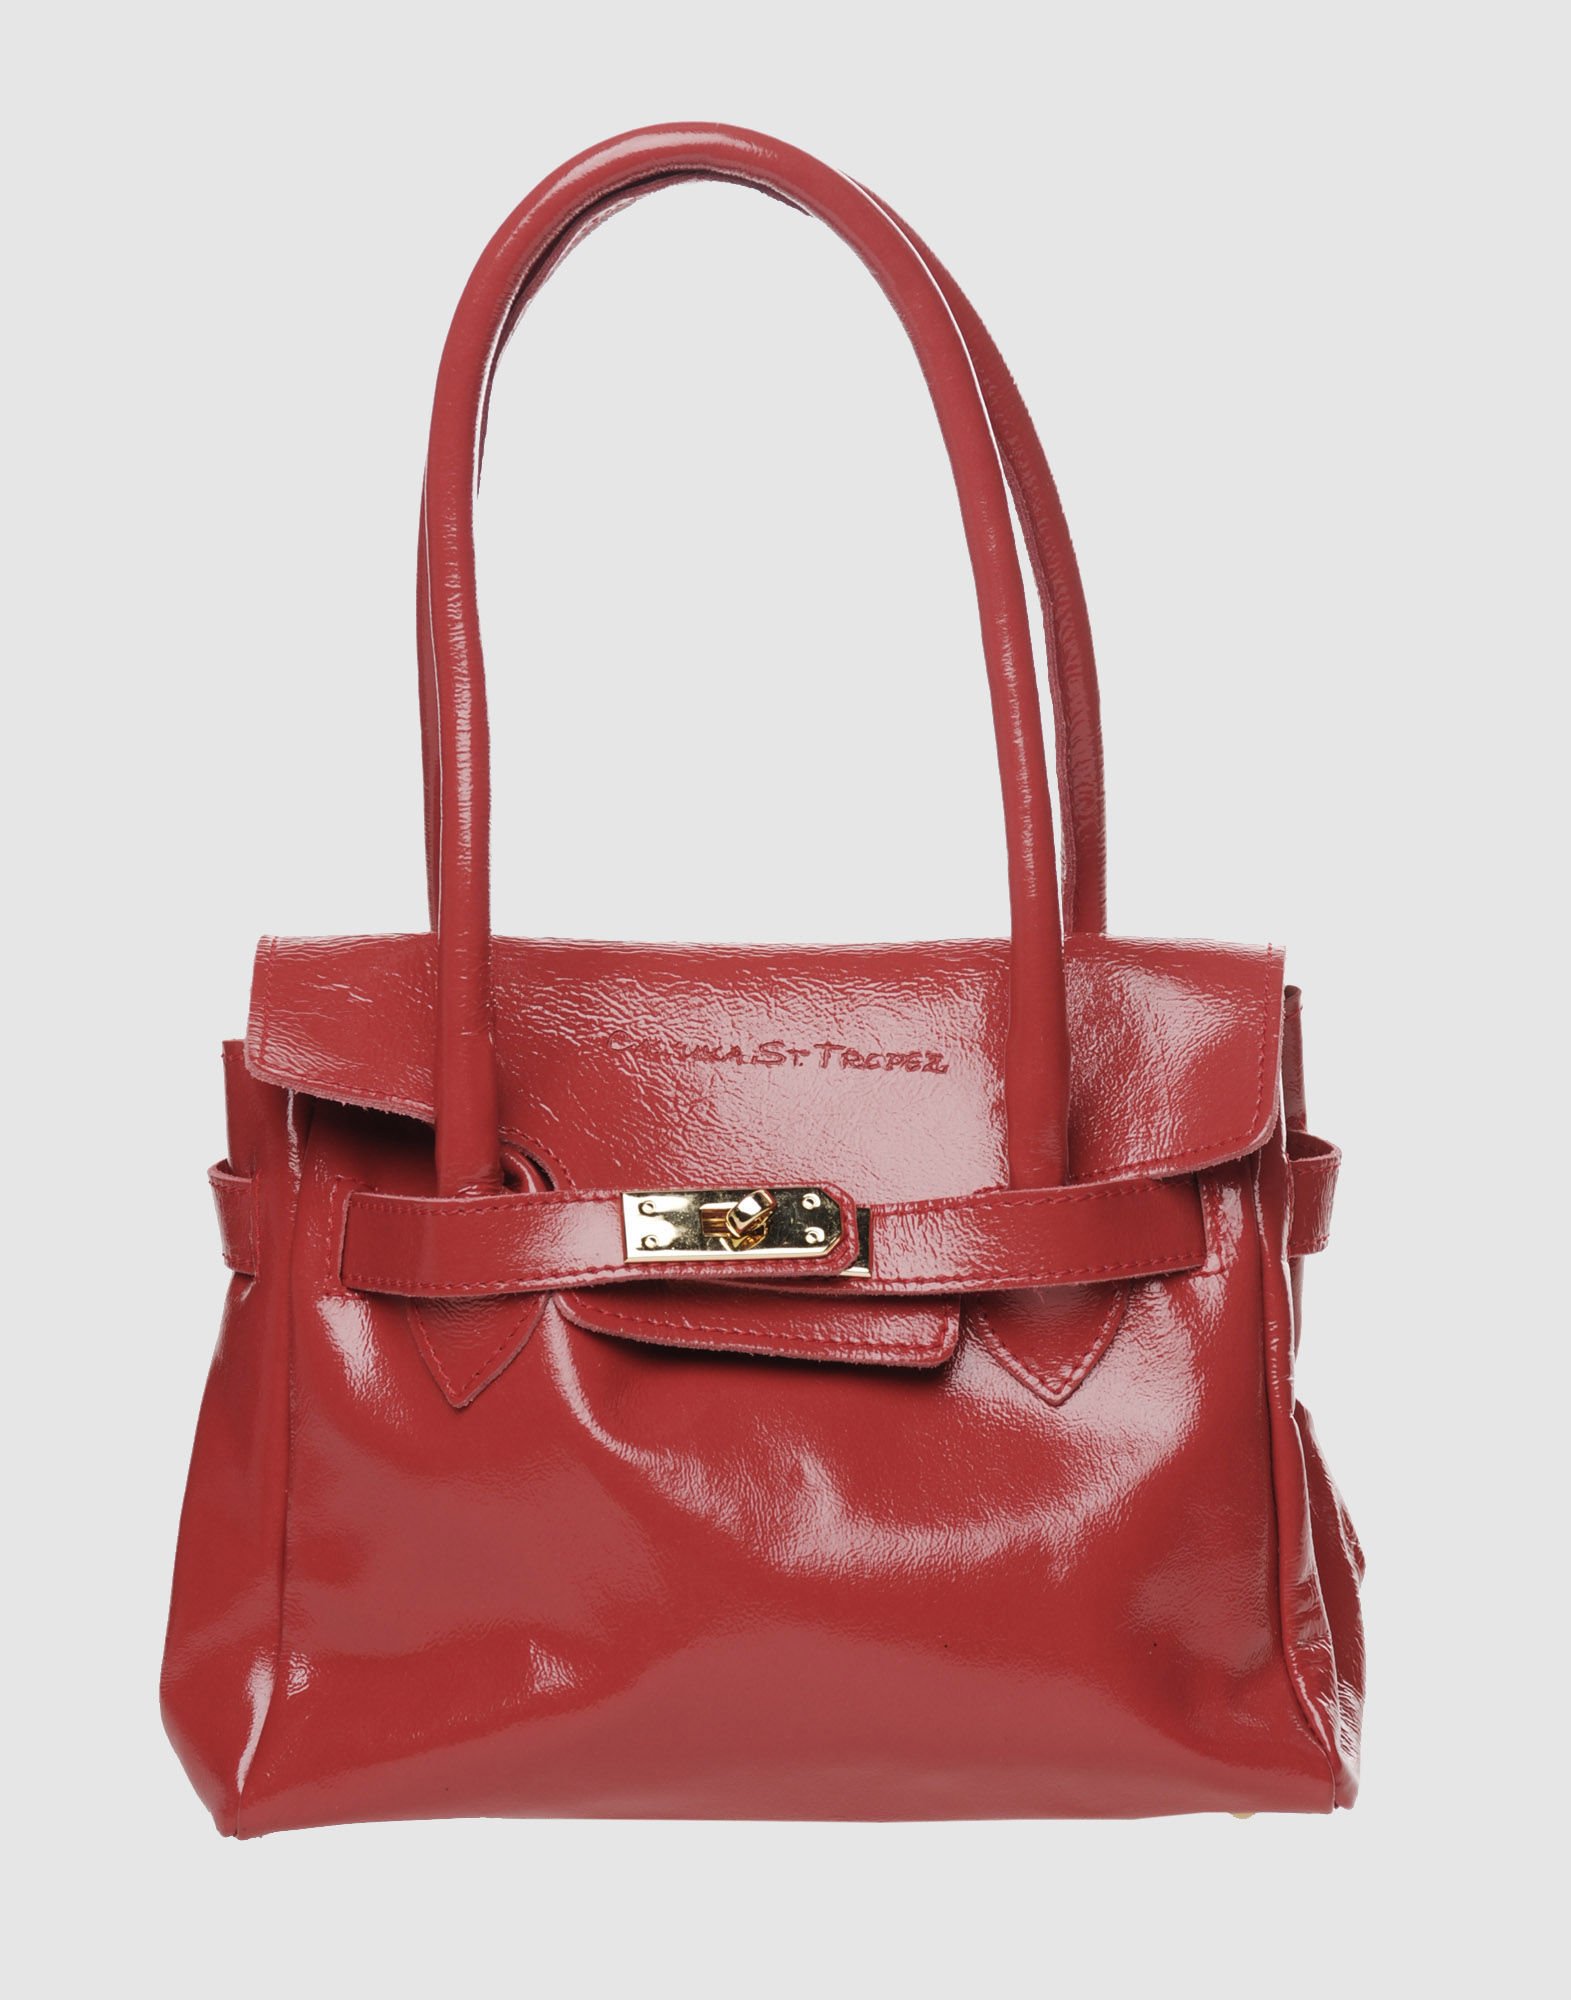 CAL'UKA ST.TROPEZ Women - Handbags - Medium leather bag CAL'UKA ST.TROPEZ on YOOX from yoox.com